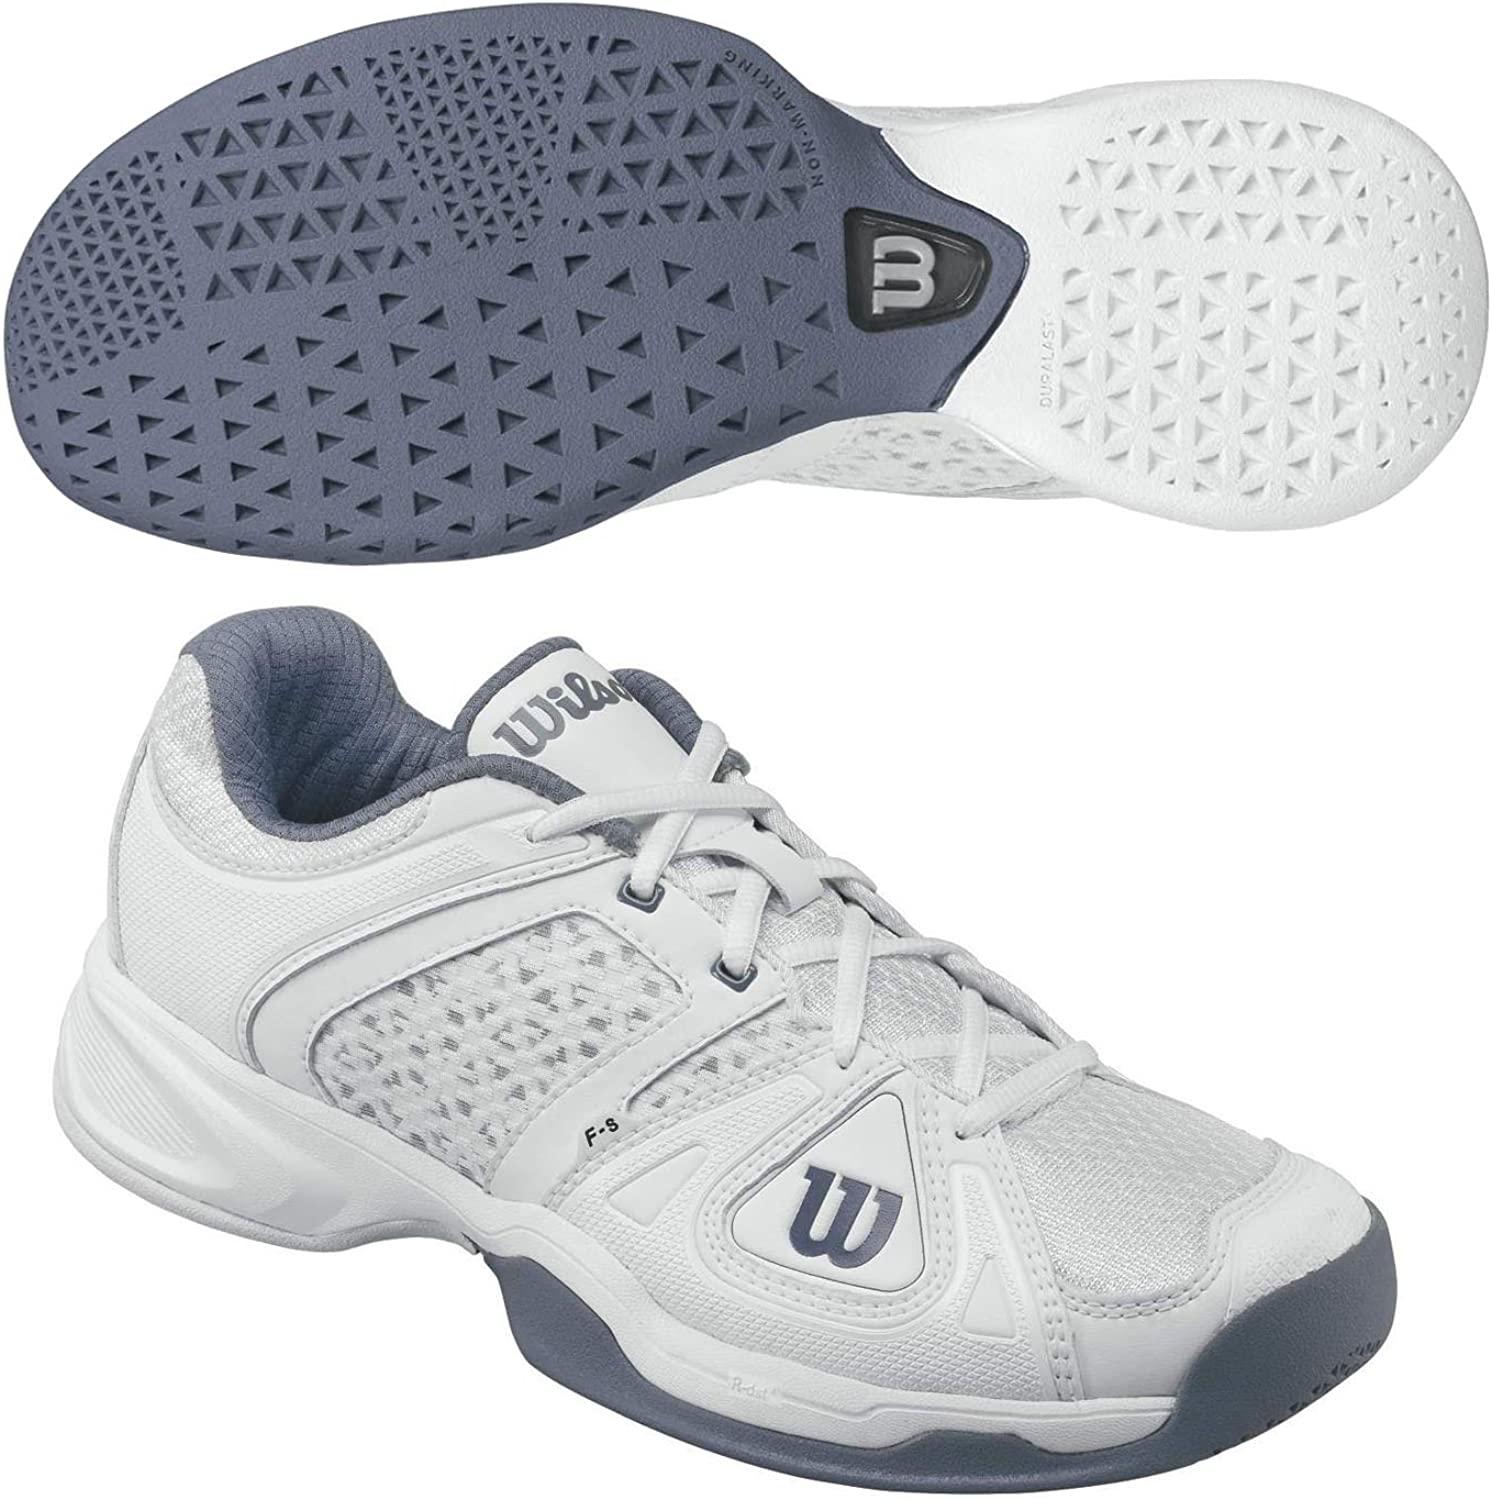 Wilson Stance Elite Mens Tennis shoes, Size- 8 UK